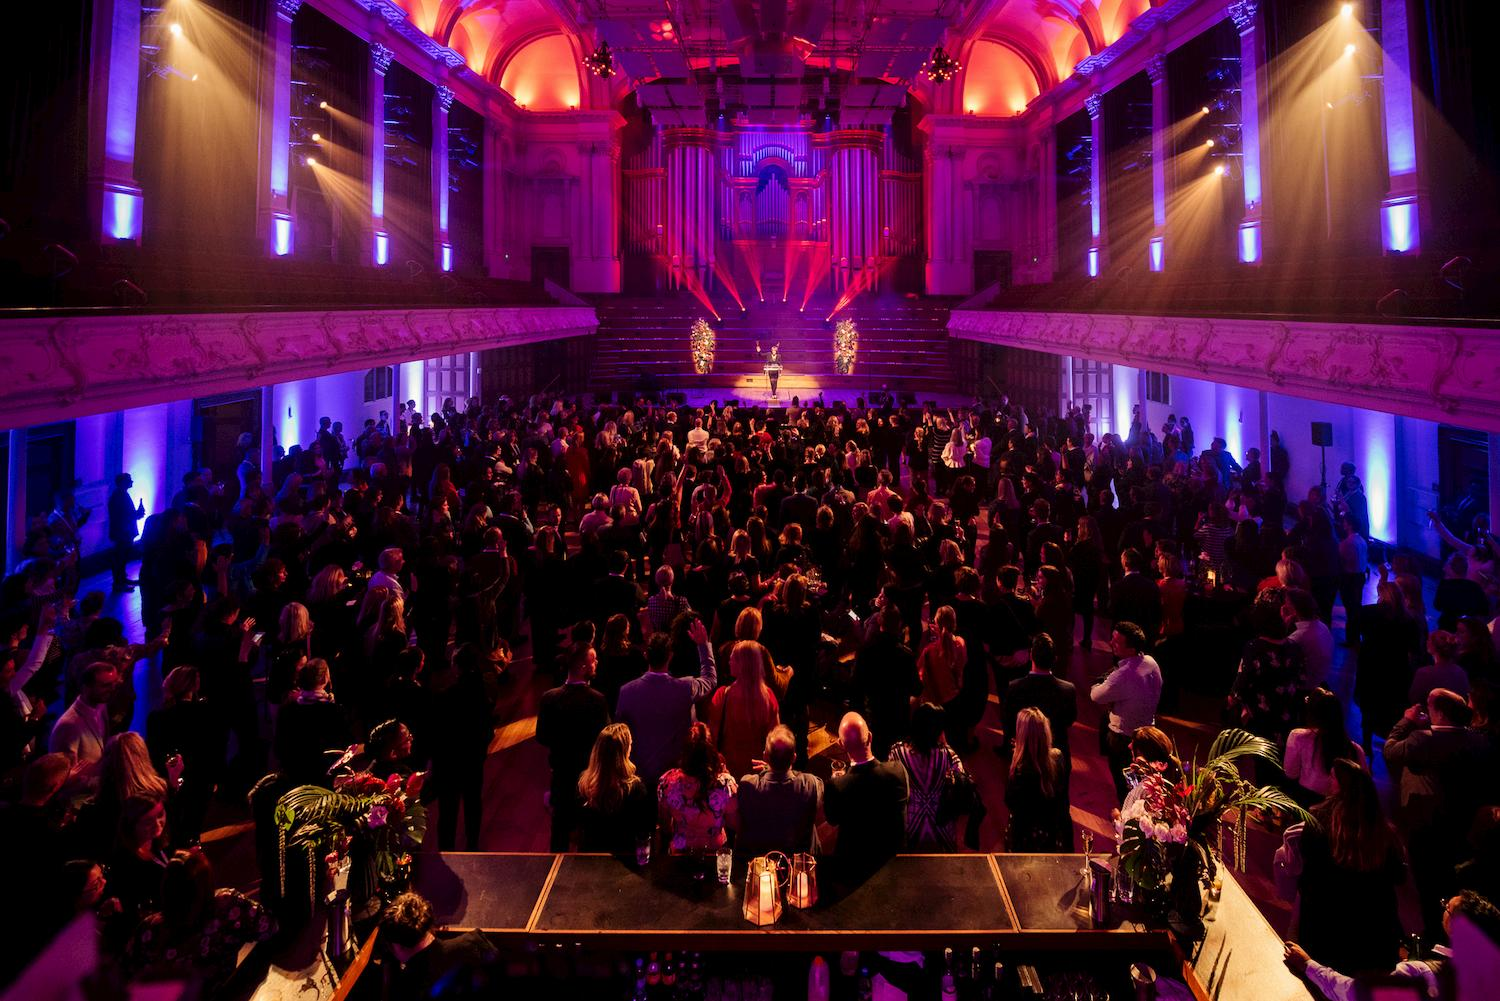 https://rfacdn.nz/conventions/assets/media/auckland-town-hall-great-hall-cocktail-14.jpg